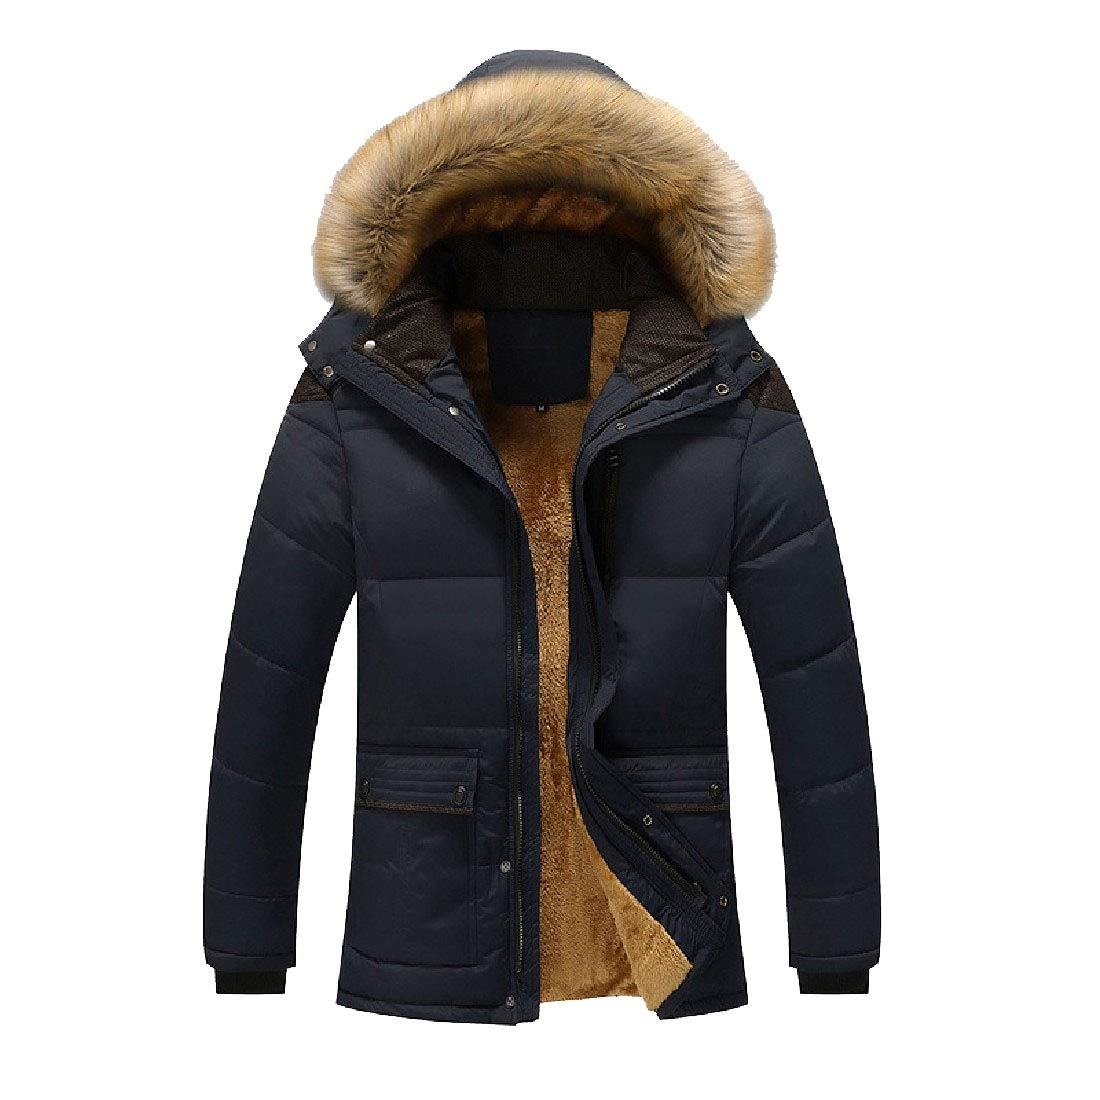 YUNY Mens Faux Fur Hooded Oversized Quilted Parka Jacket Outdoor Coat Blue M